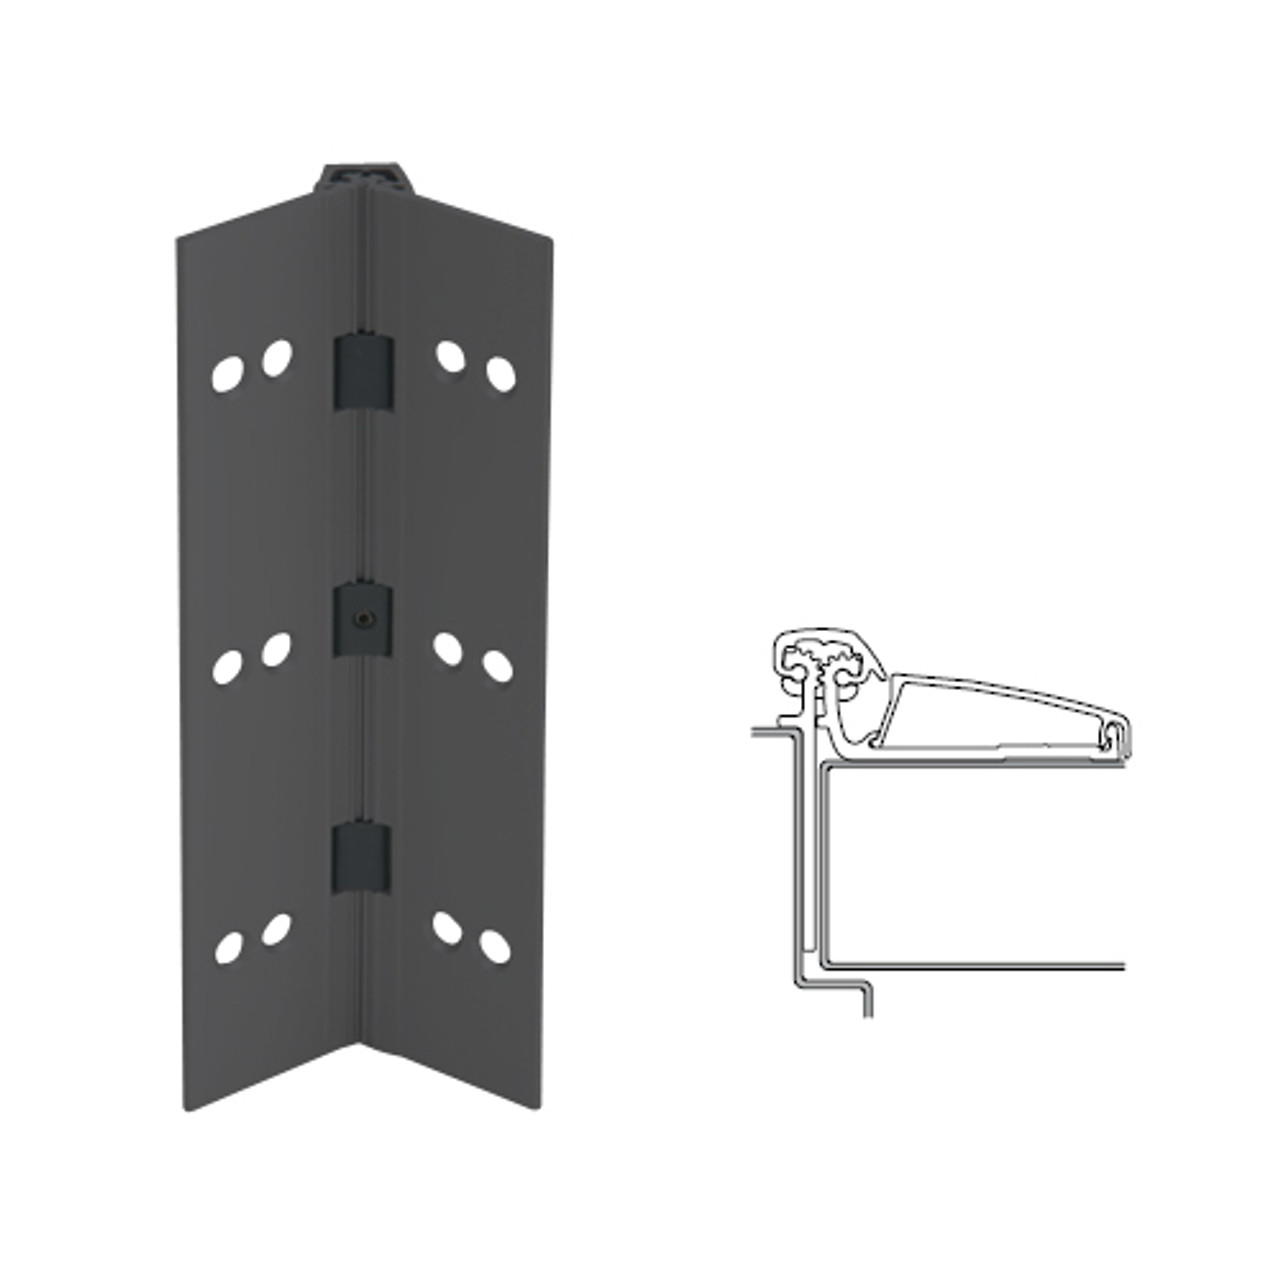 046XY-315AN-85-TF IVES Adjustable Half Surface Continuous Geared Hinges with Thread Forming Screws in Anodized Black